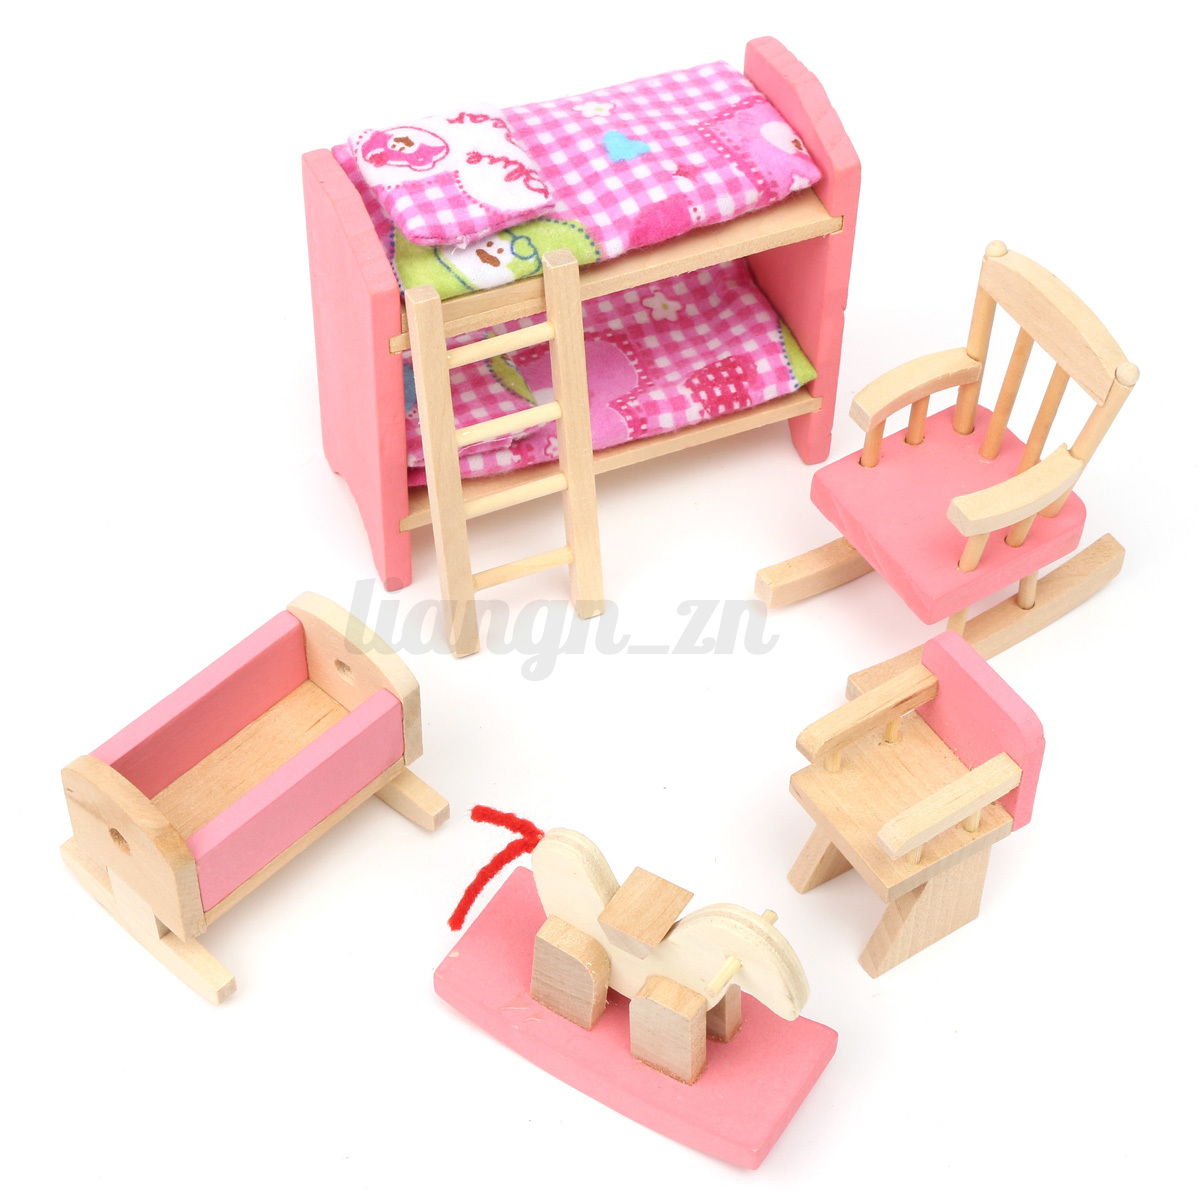 Au xmas gift wooden doll house miniature family children furniture set kit toys ebay Dolls wooden furniture